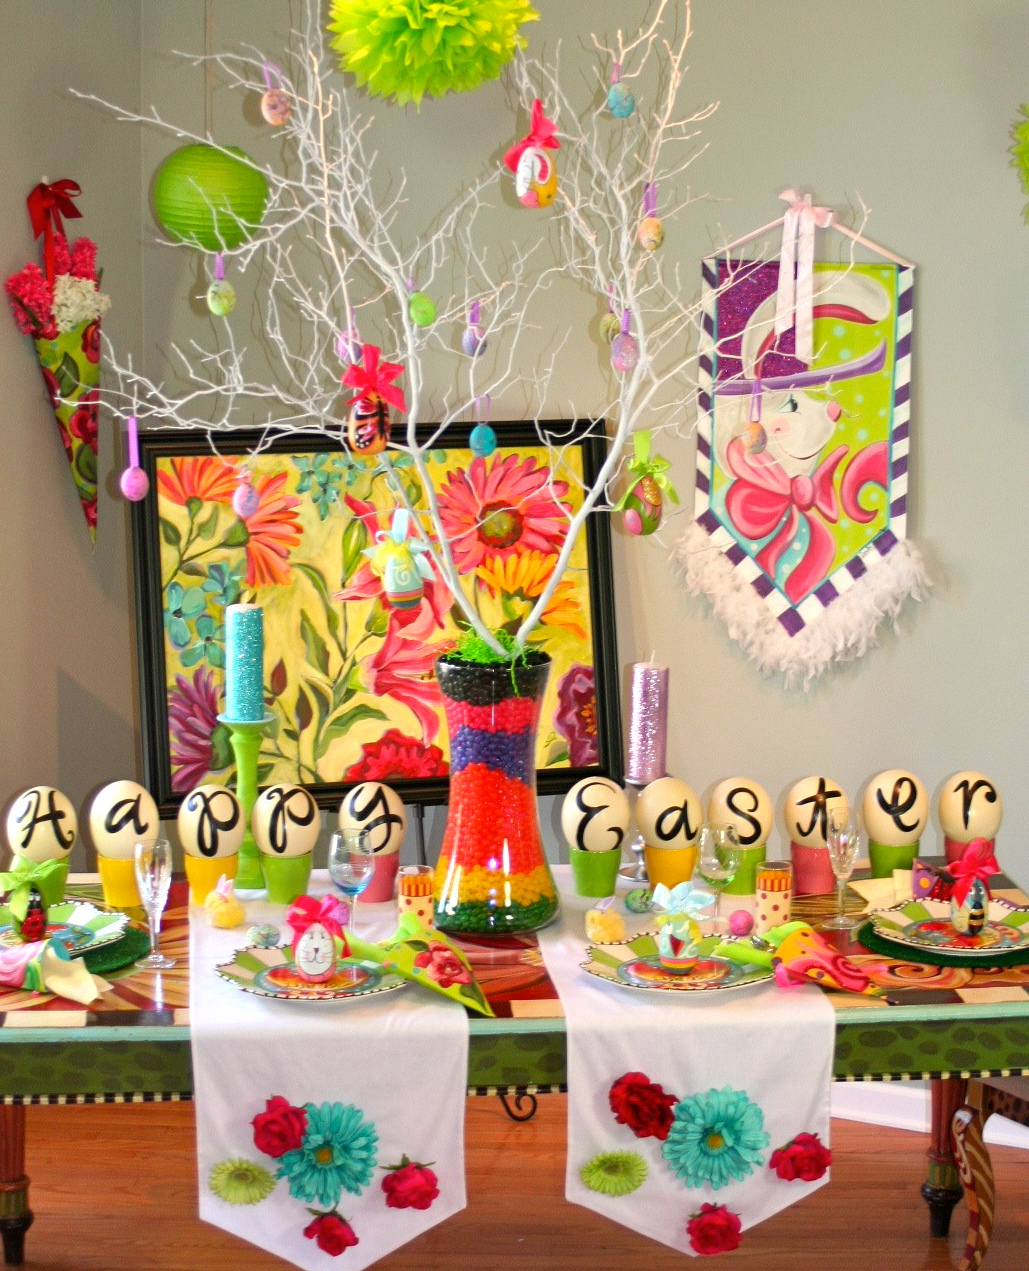 Lisa frost and show me decorating diy for easter miss for Diy easter decorations home